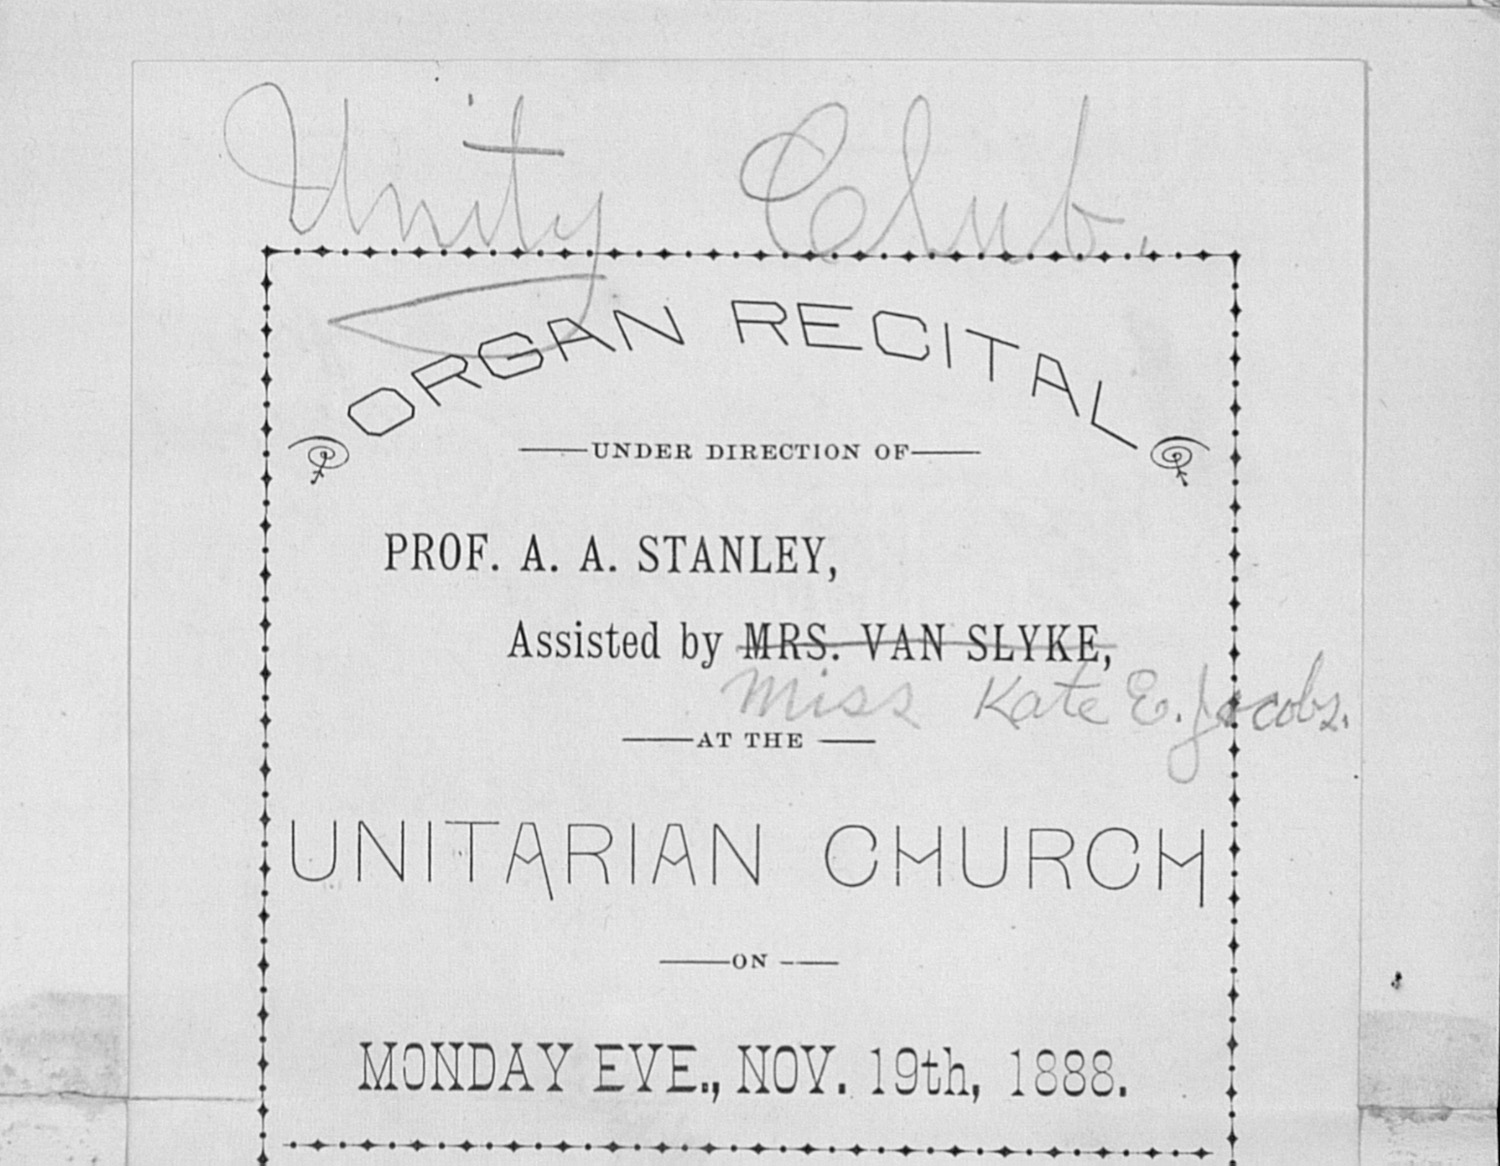 UMS Concert Program, Nov. 19th, 1888: Organ Recital -- Prof. A. A. Stanley image